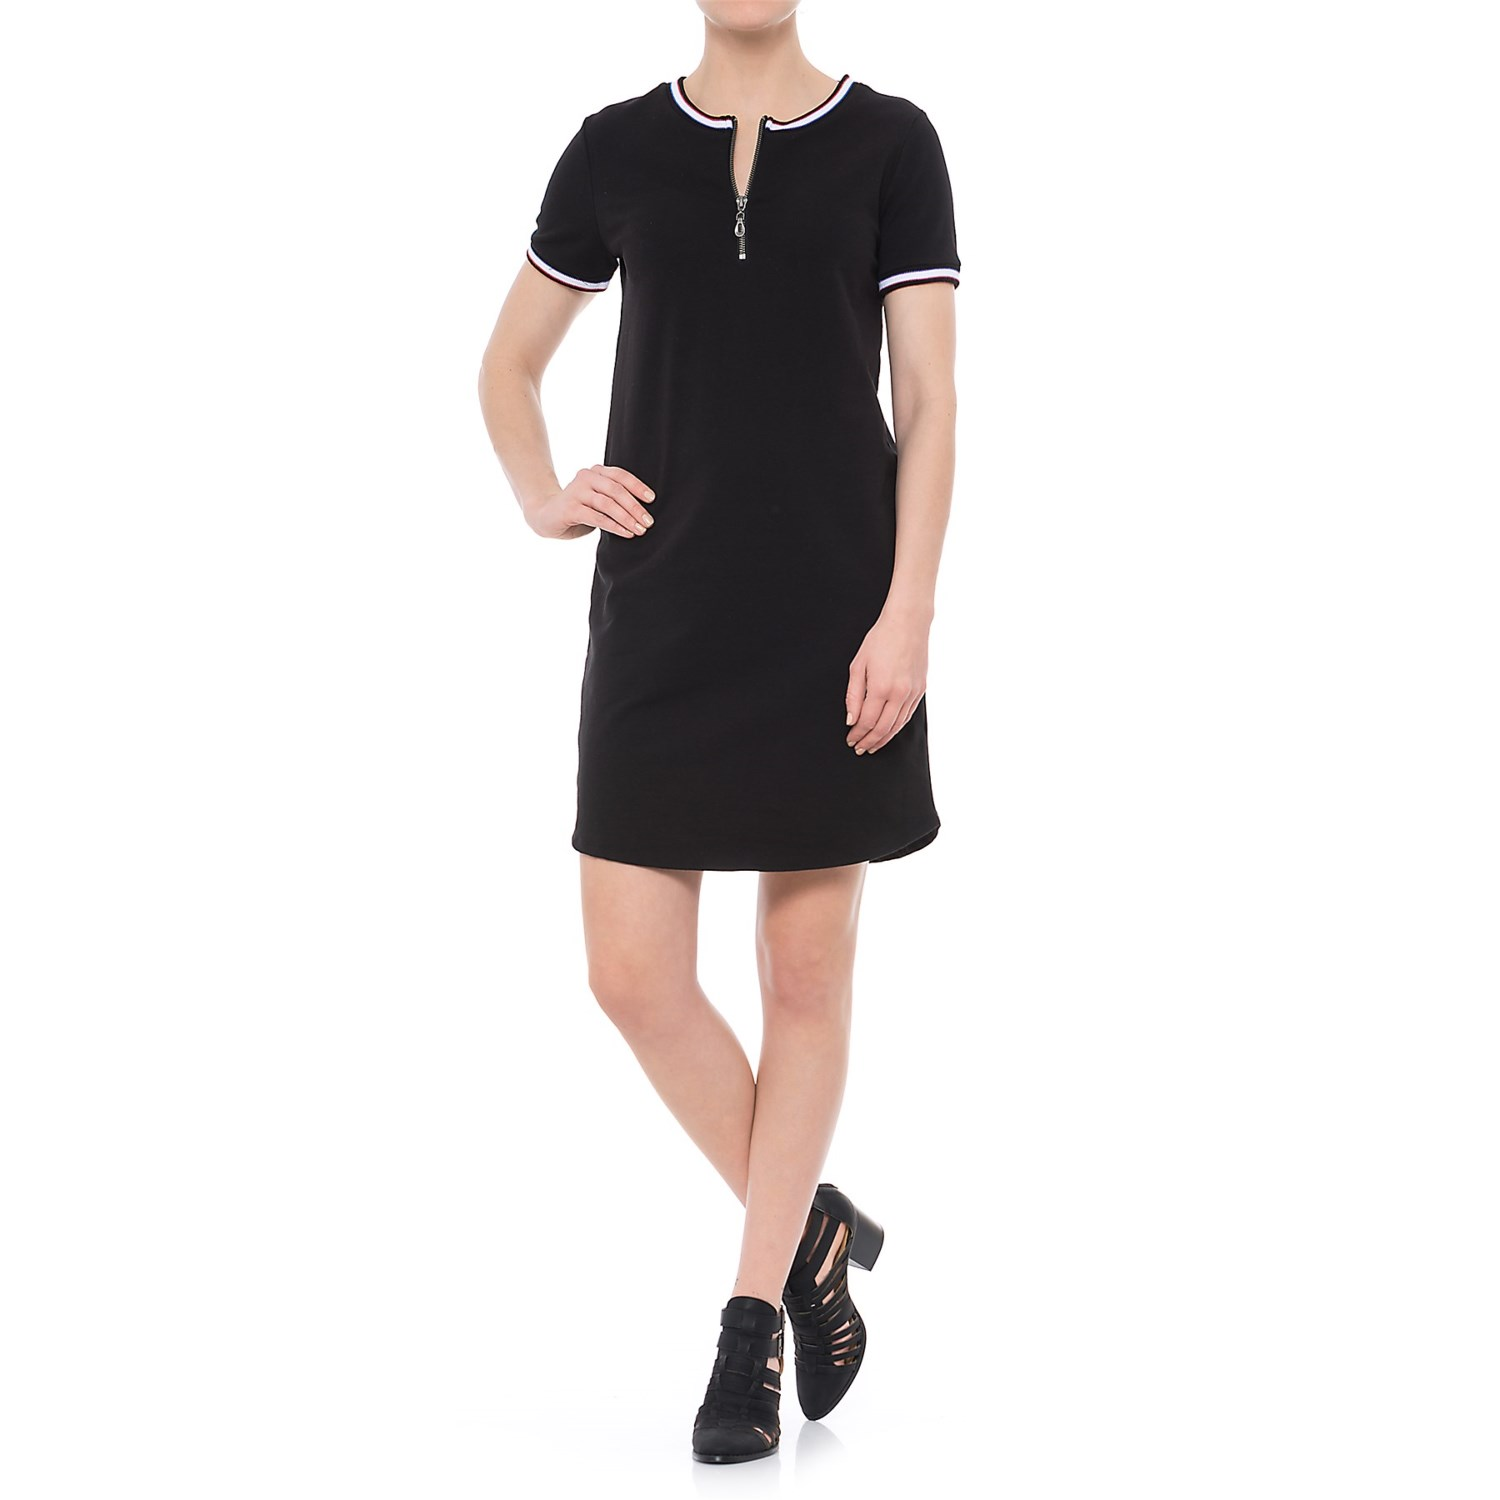 CG Cable & Gauge Summer French Terry Dress (For Women) - Save 48%